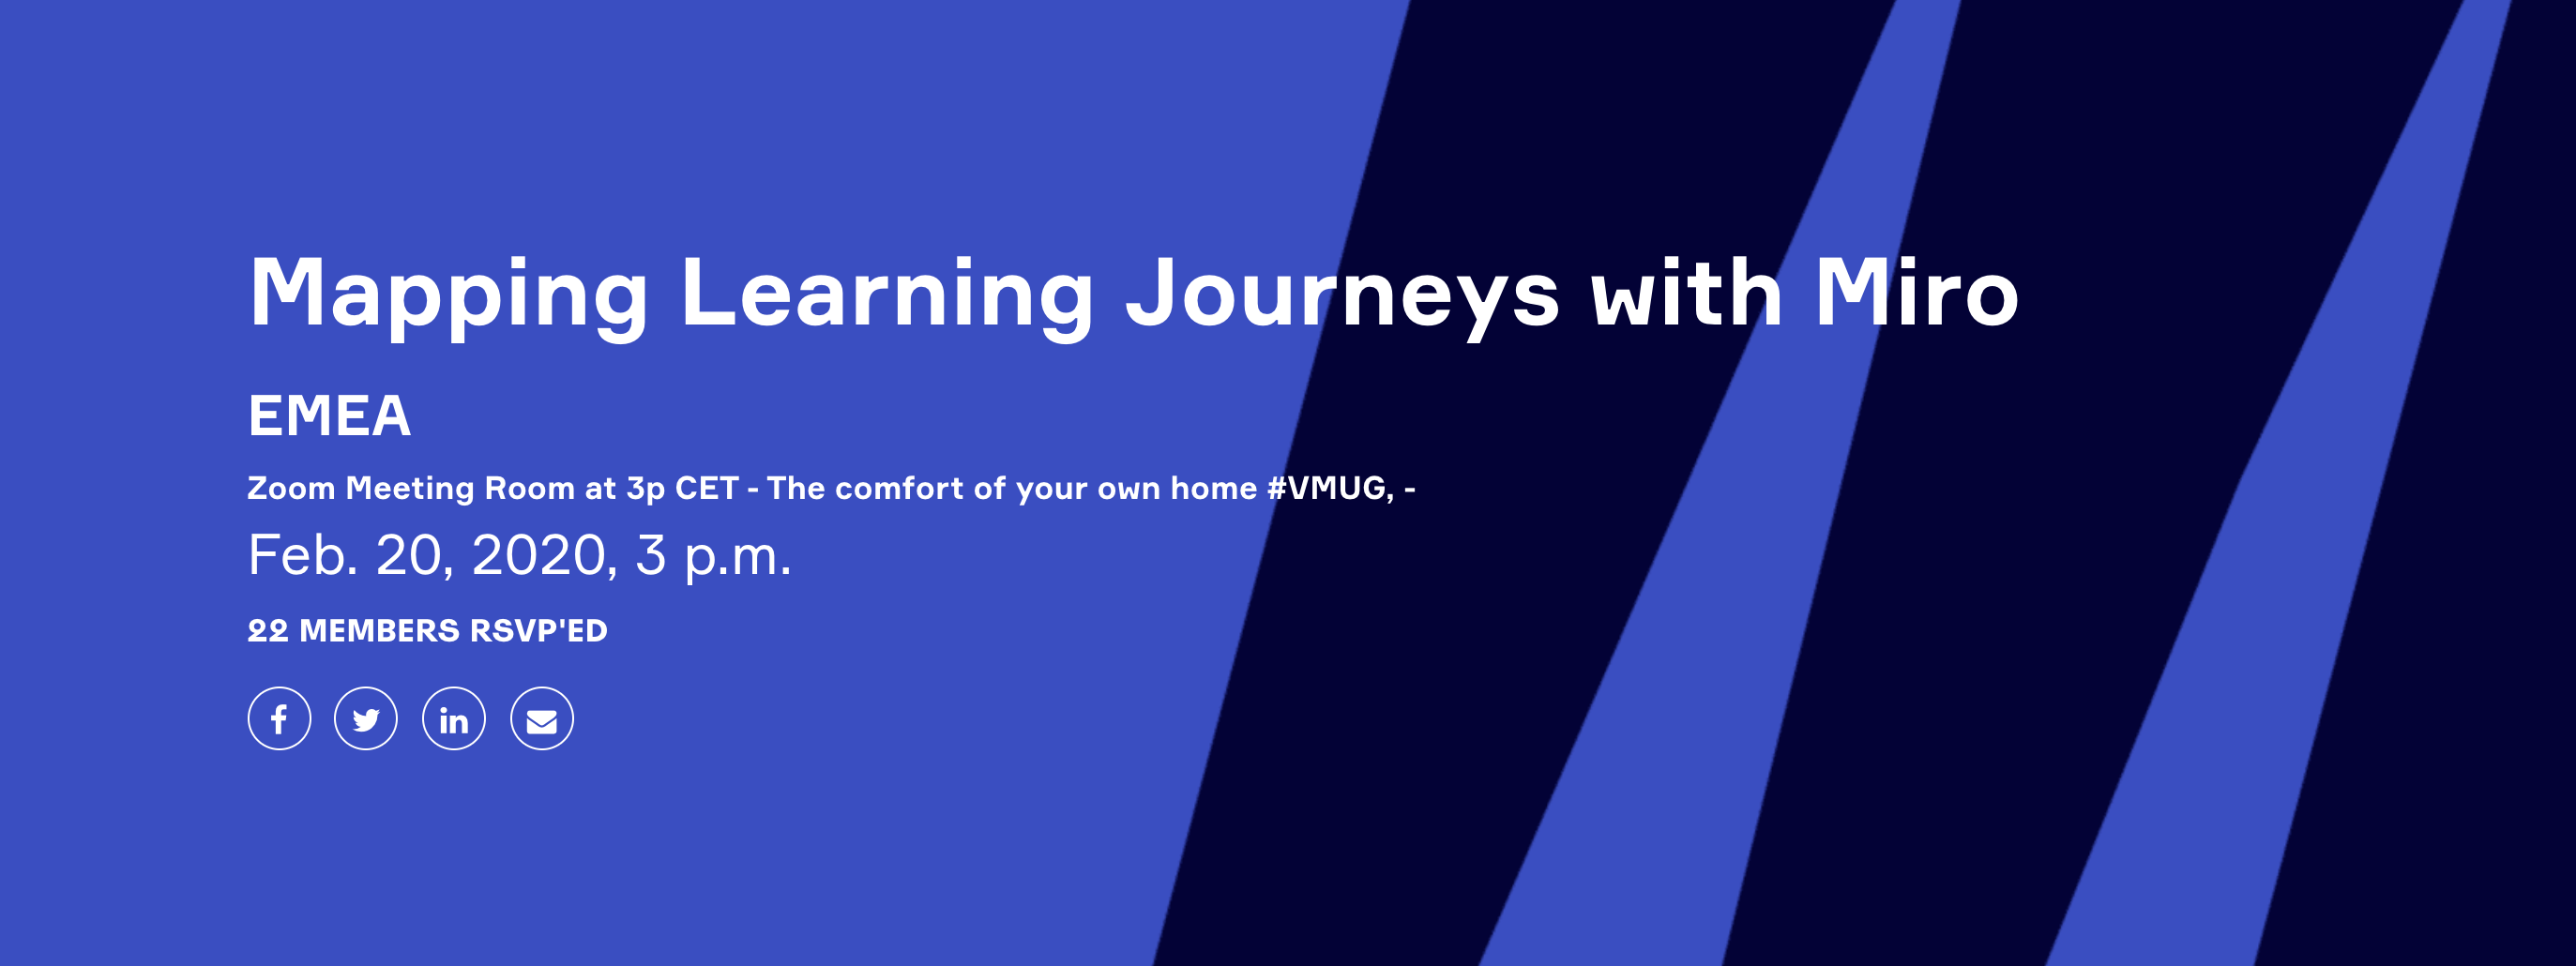 Mapping Learning Journeys with Miro